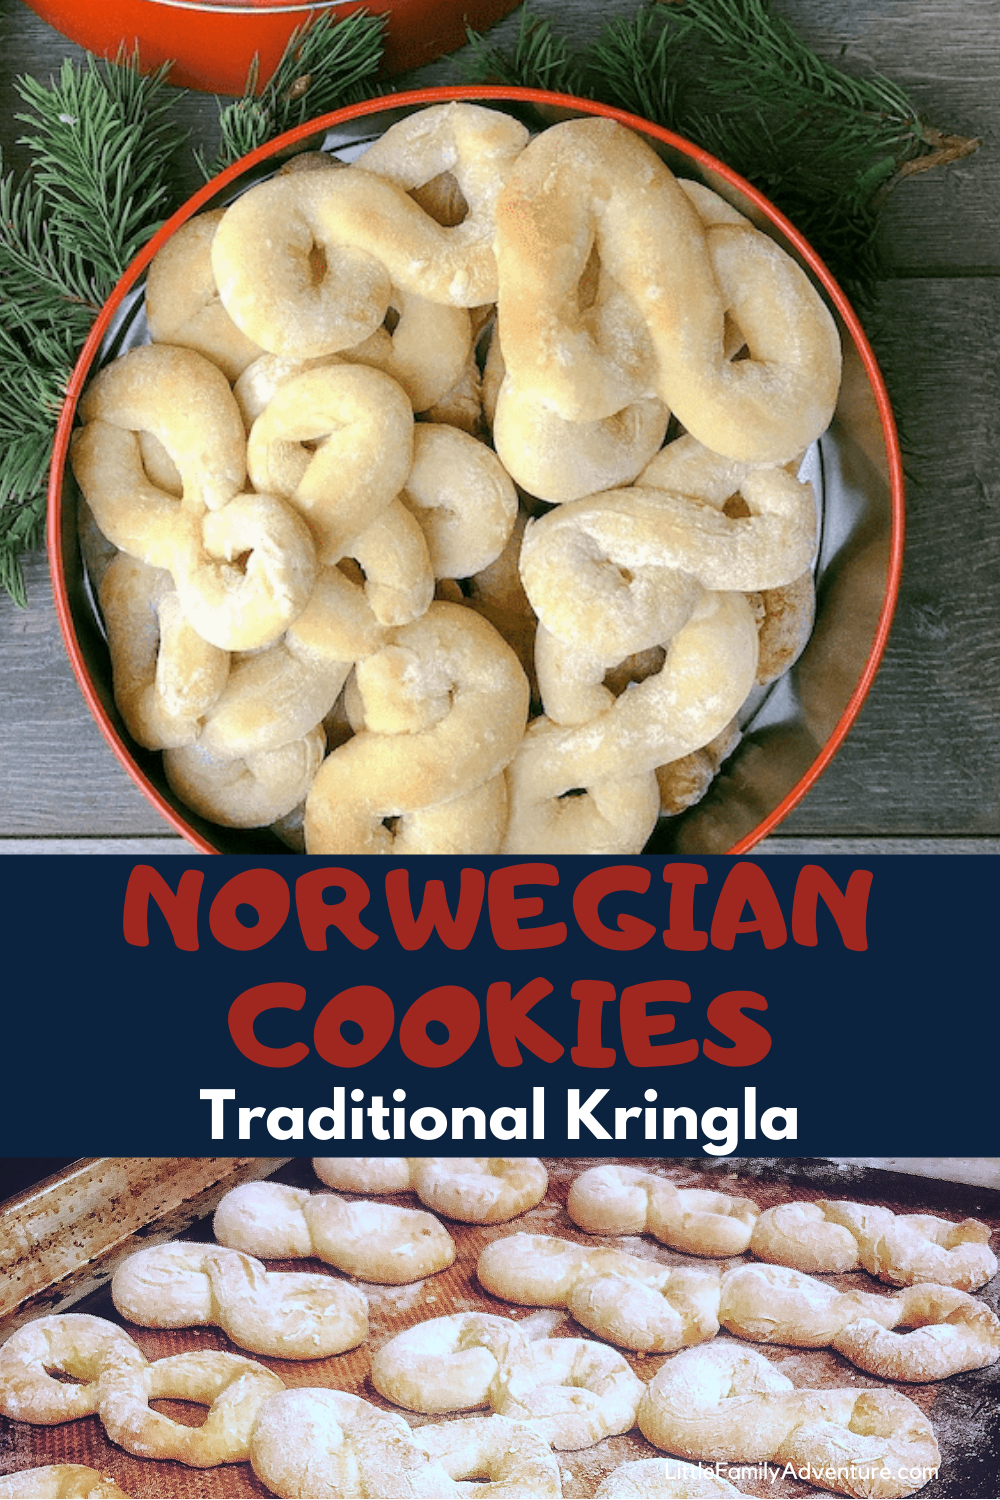 Kringla Recipe For Traditional Norwegian Sugar Cookies In 2020 Norwegian Cookies Recipes Kringla Recipe